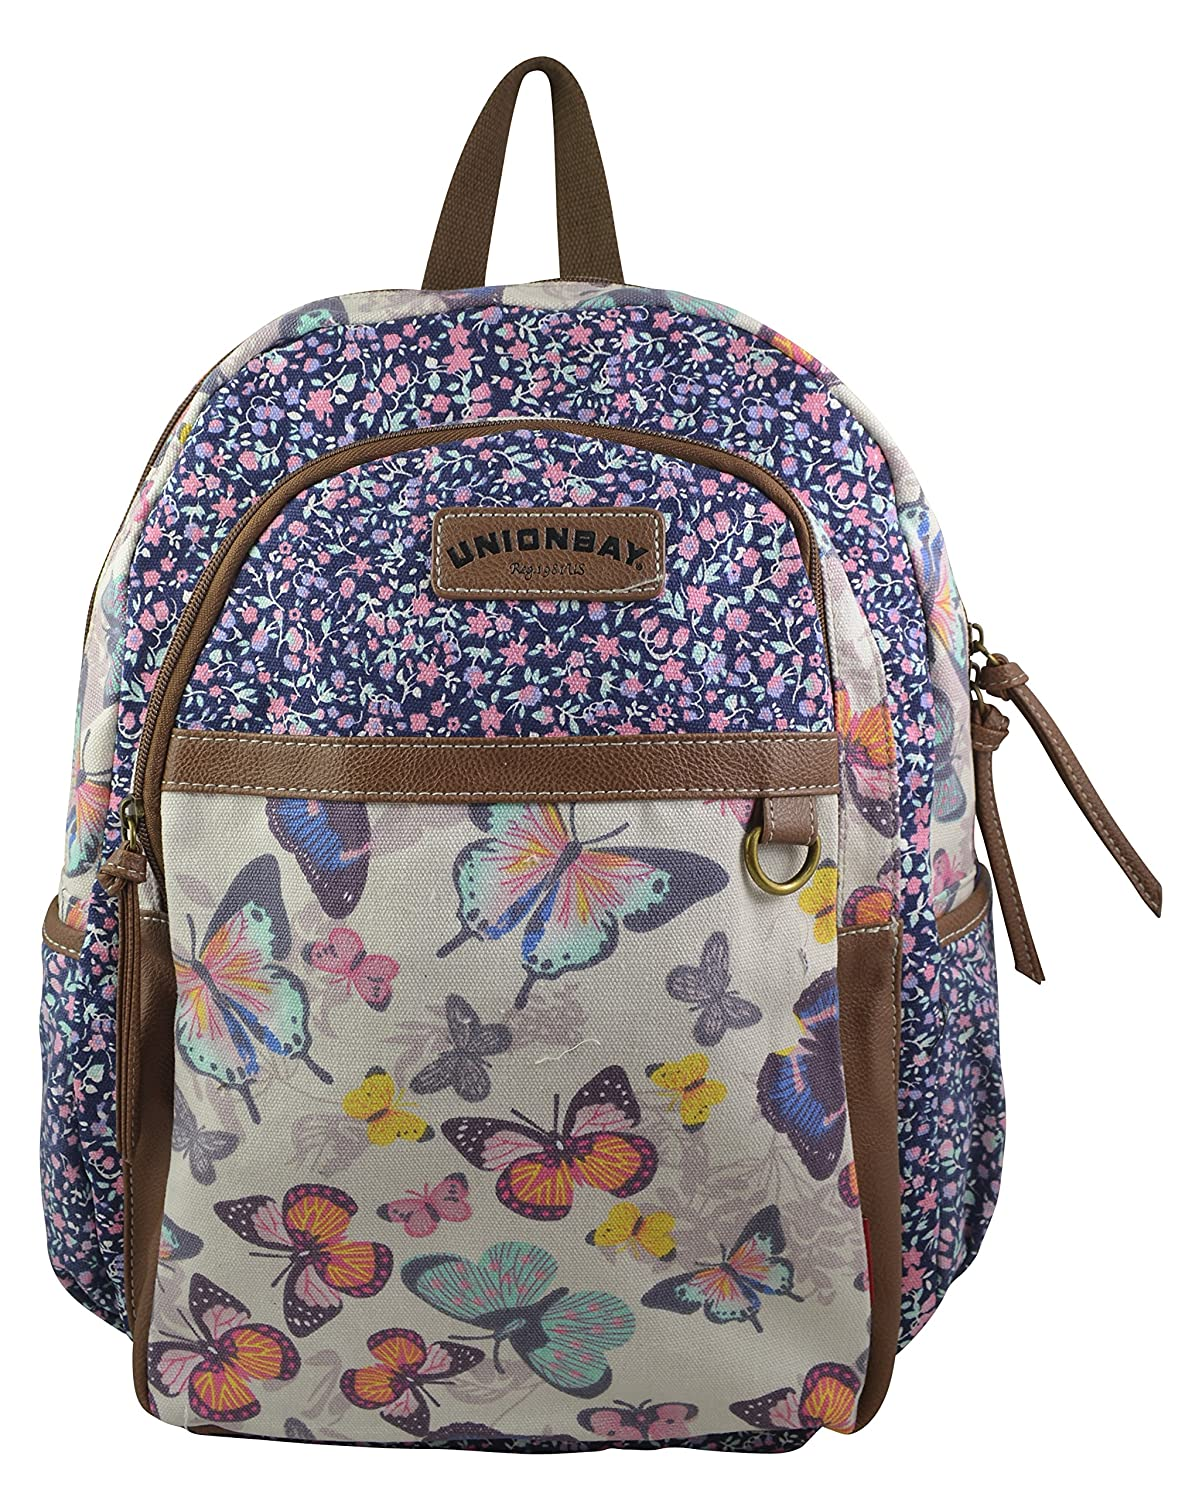 The most adorable & affordable girls backpacks of 2017   little girls backpacks   best backpacks for girls   back to school supplies   simply-well-balanced